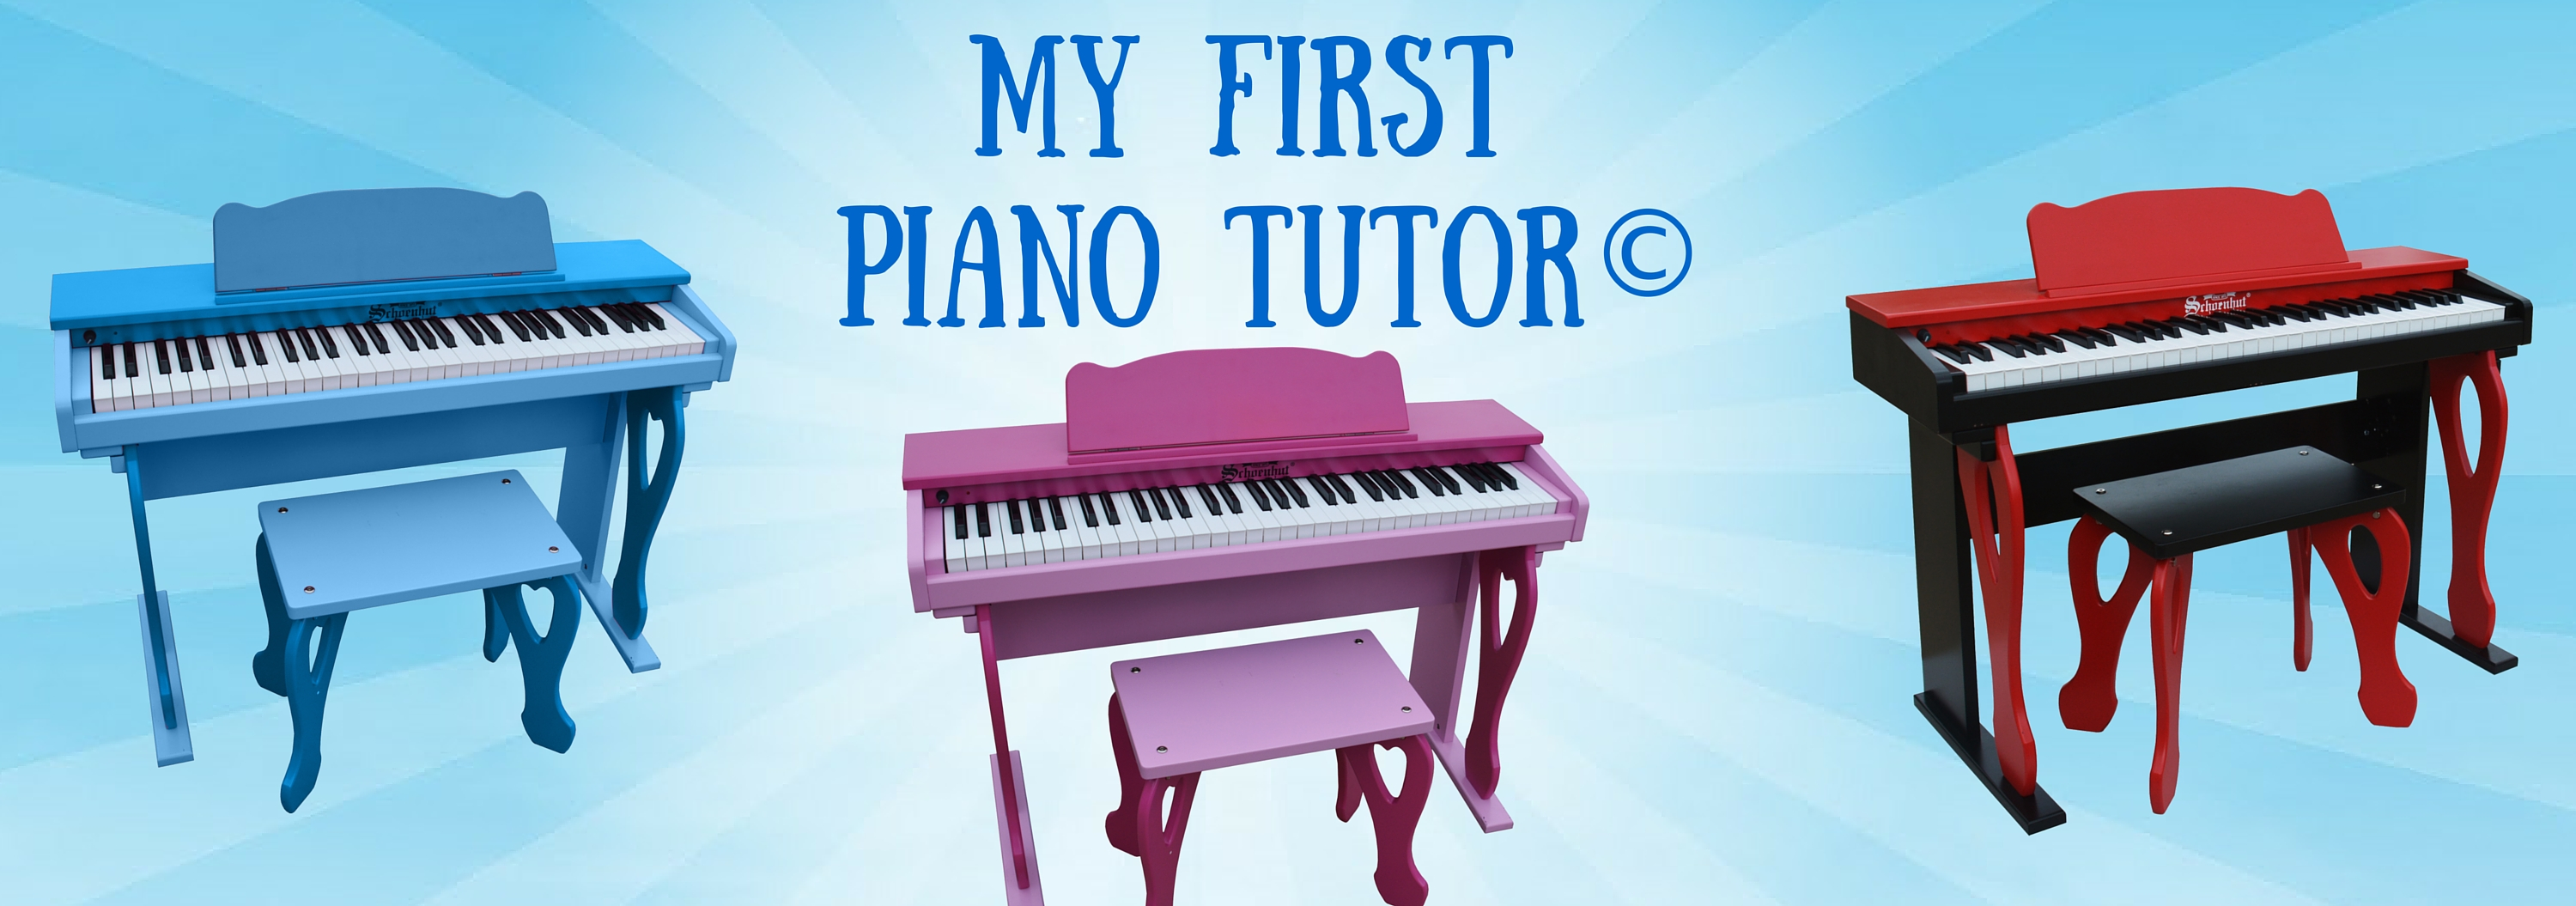 My First Piano Tutor (2)